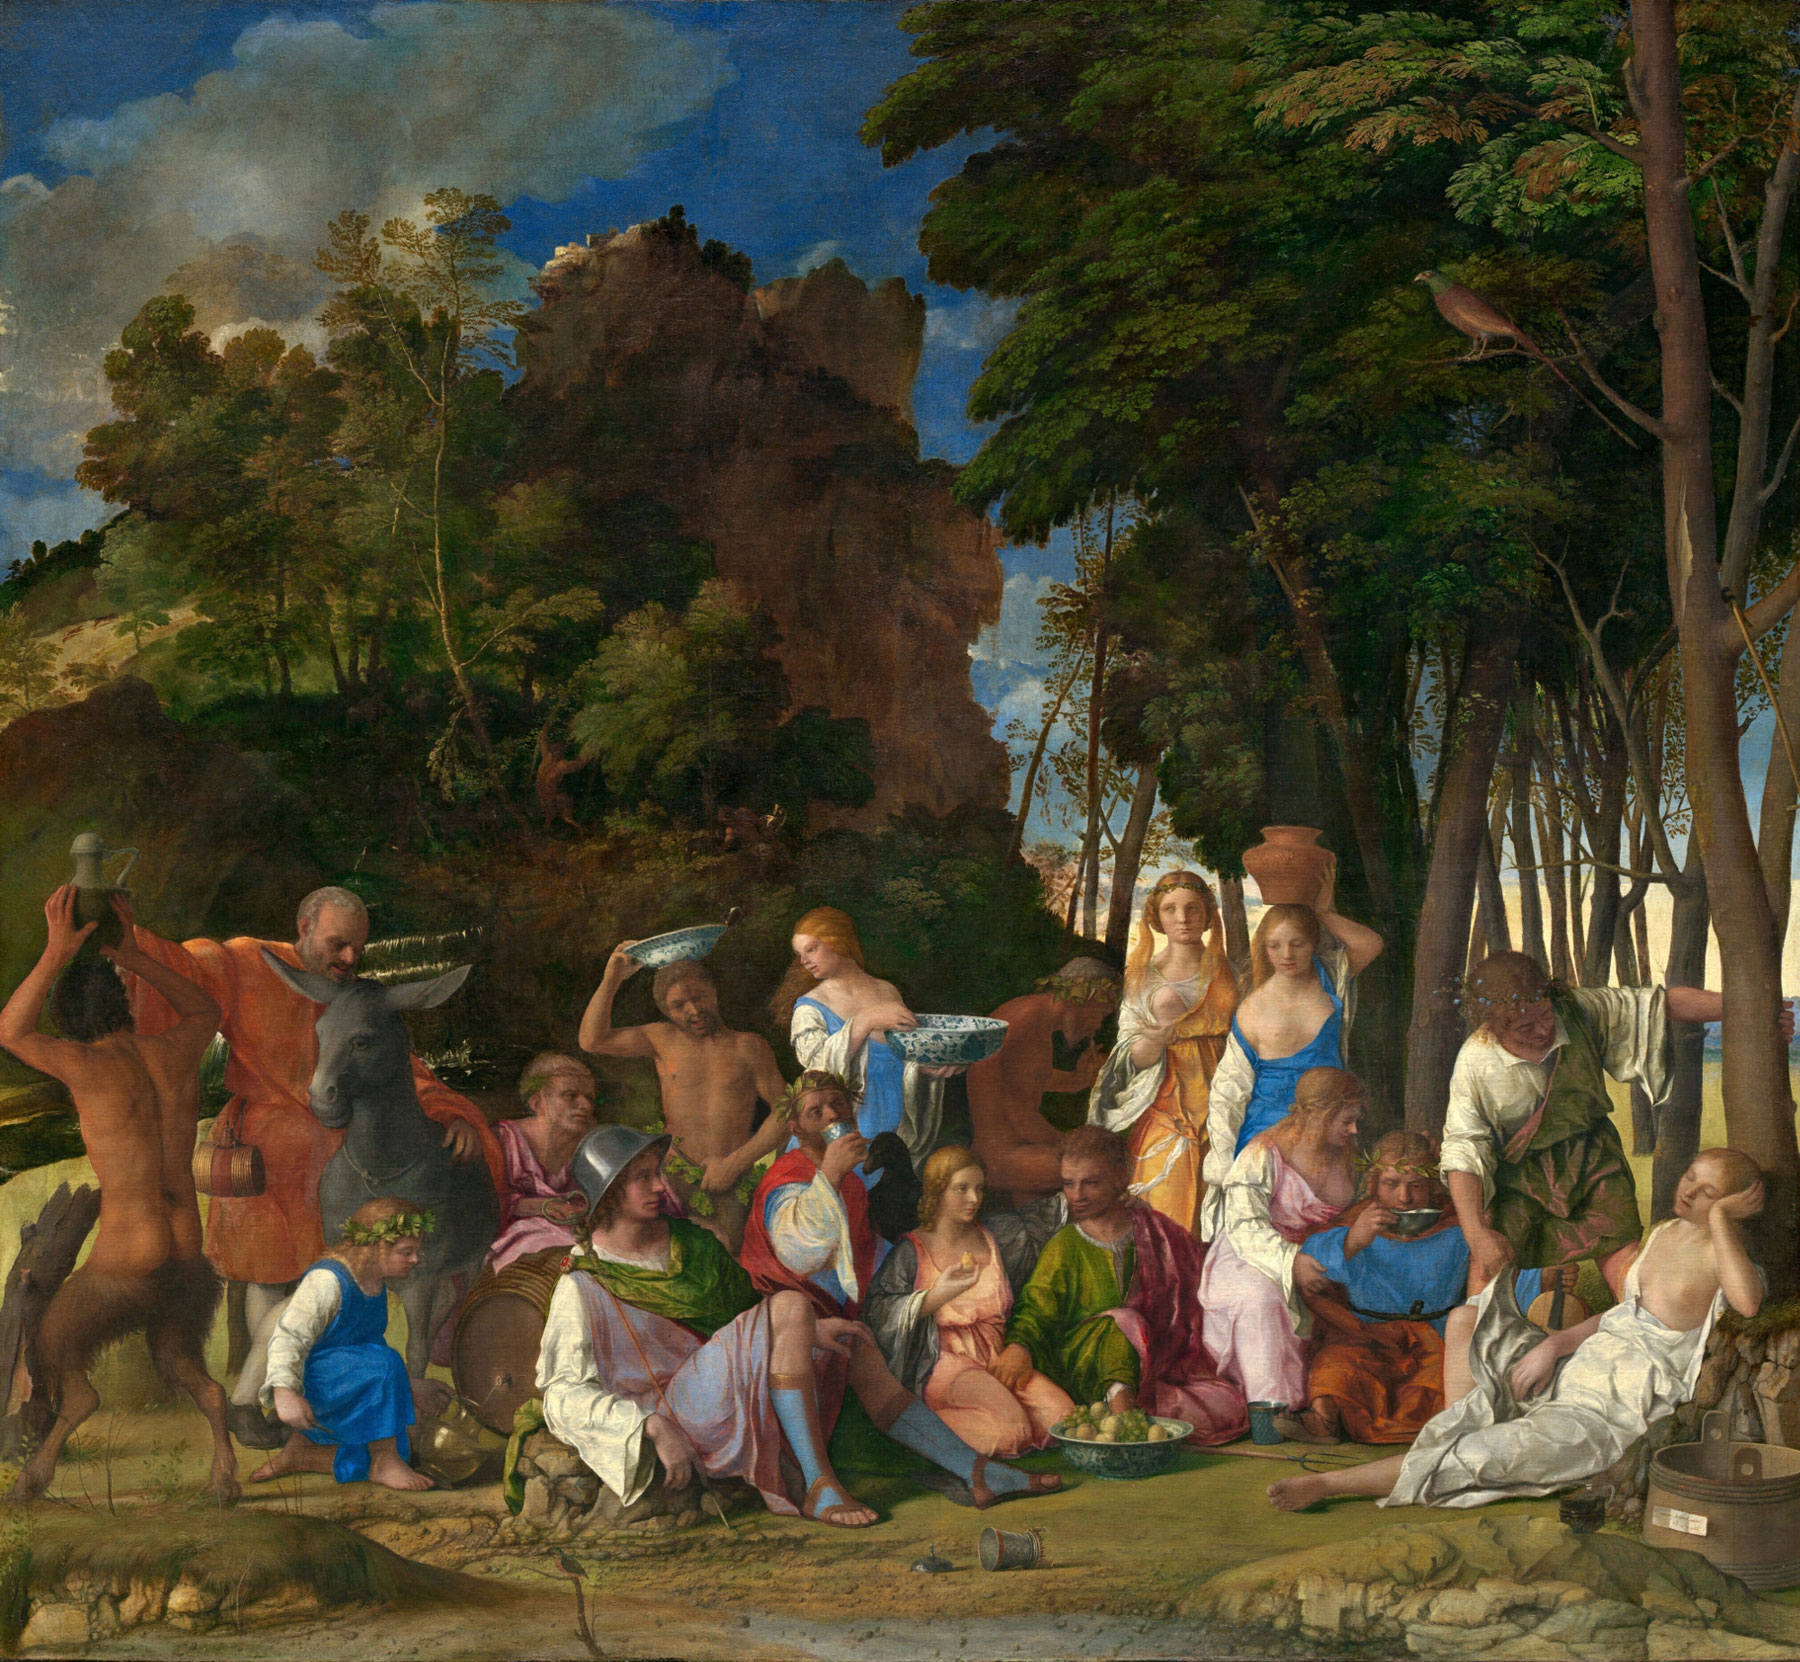 The Feast of the Gods by Giovanni Bellini and Titian